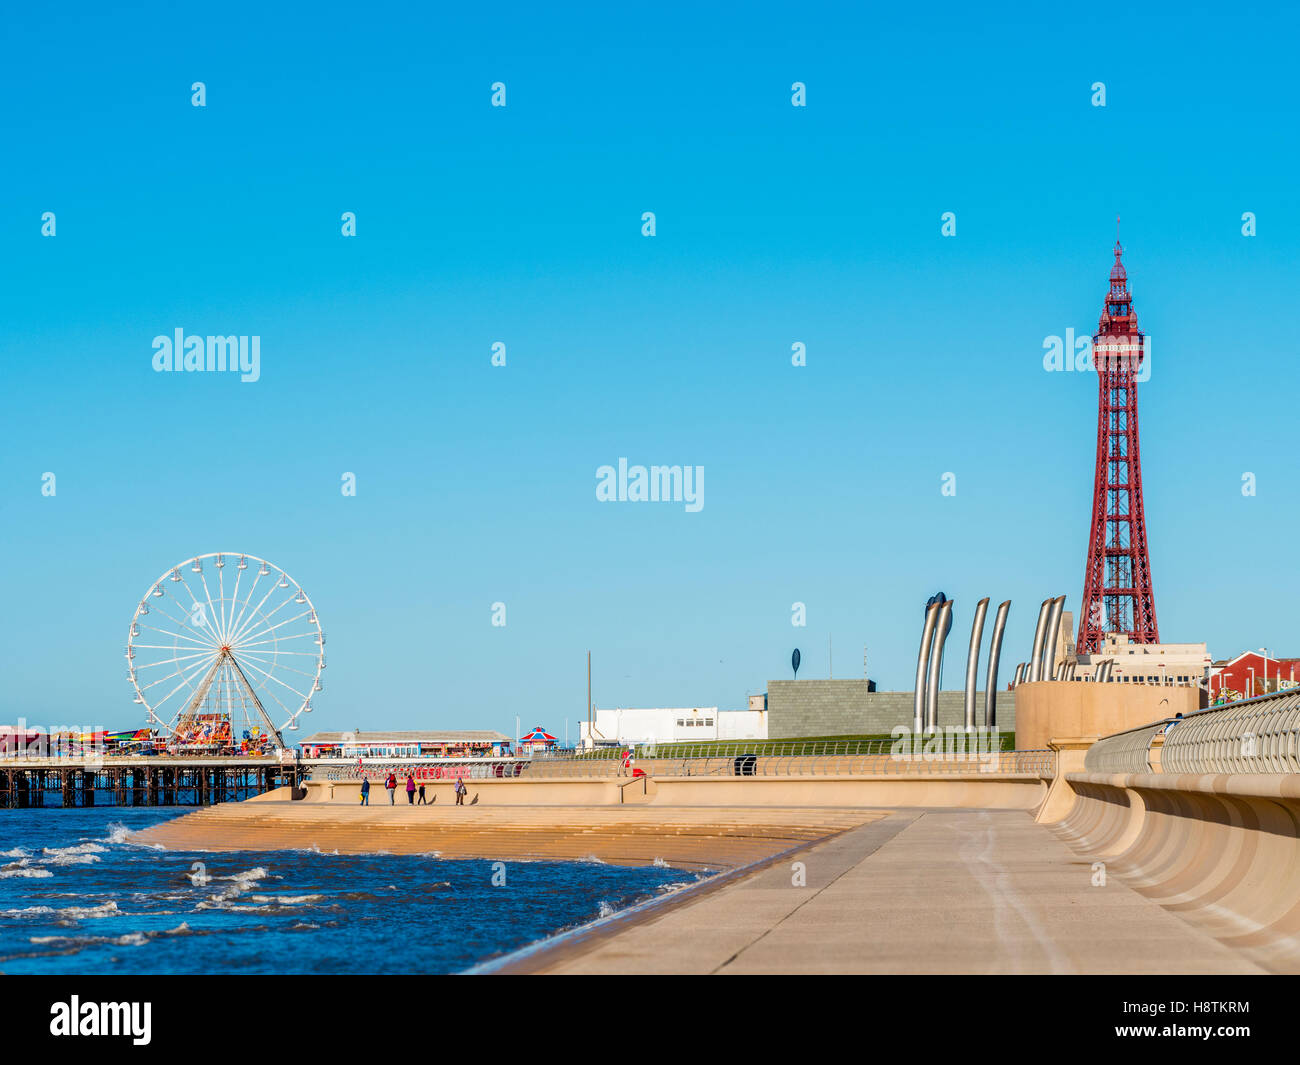 Blackpool Tower and Central Pier, Blackpool, Lancashire, UK. - Stock Image